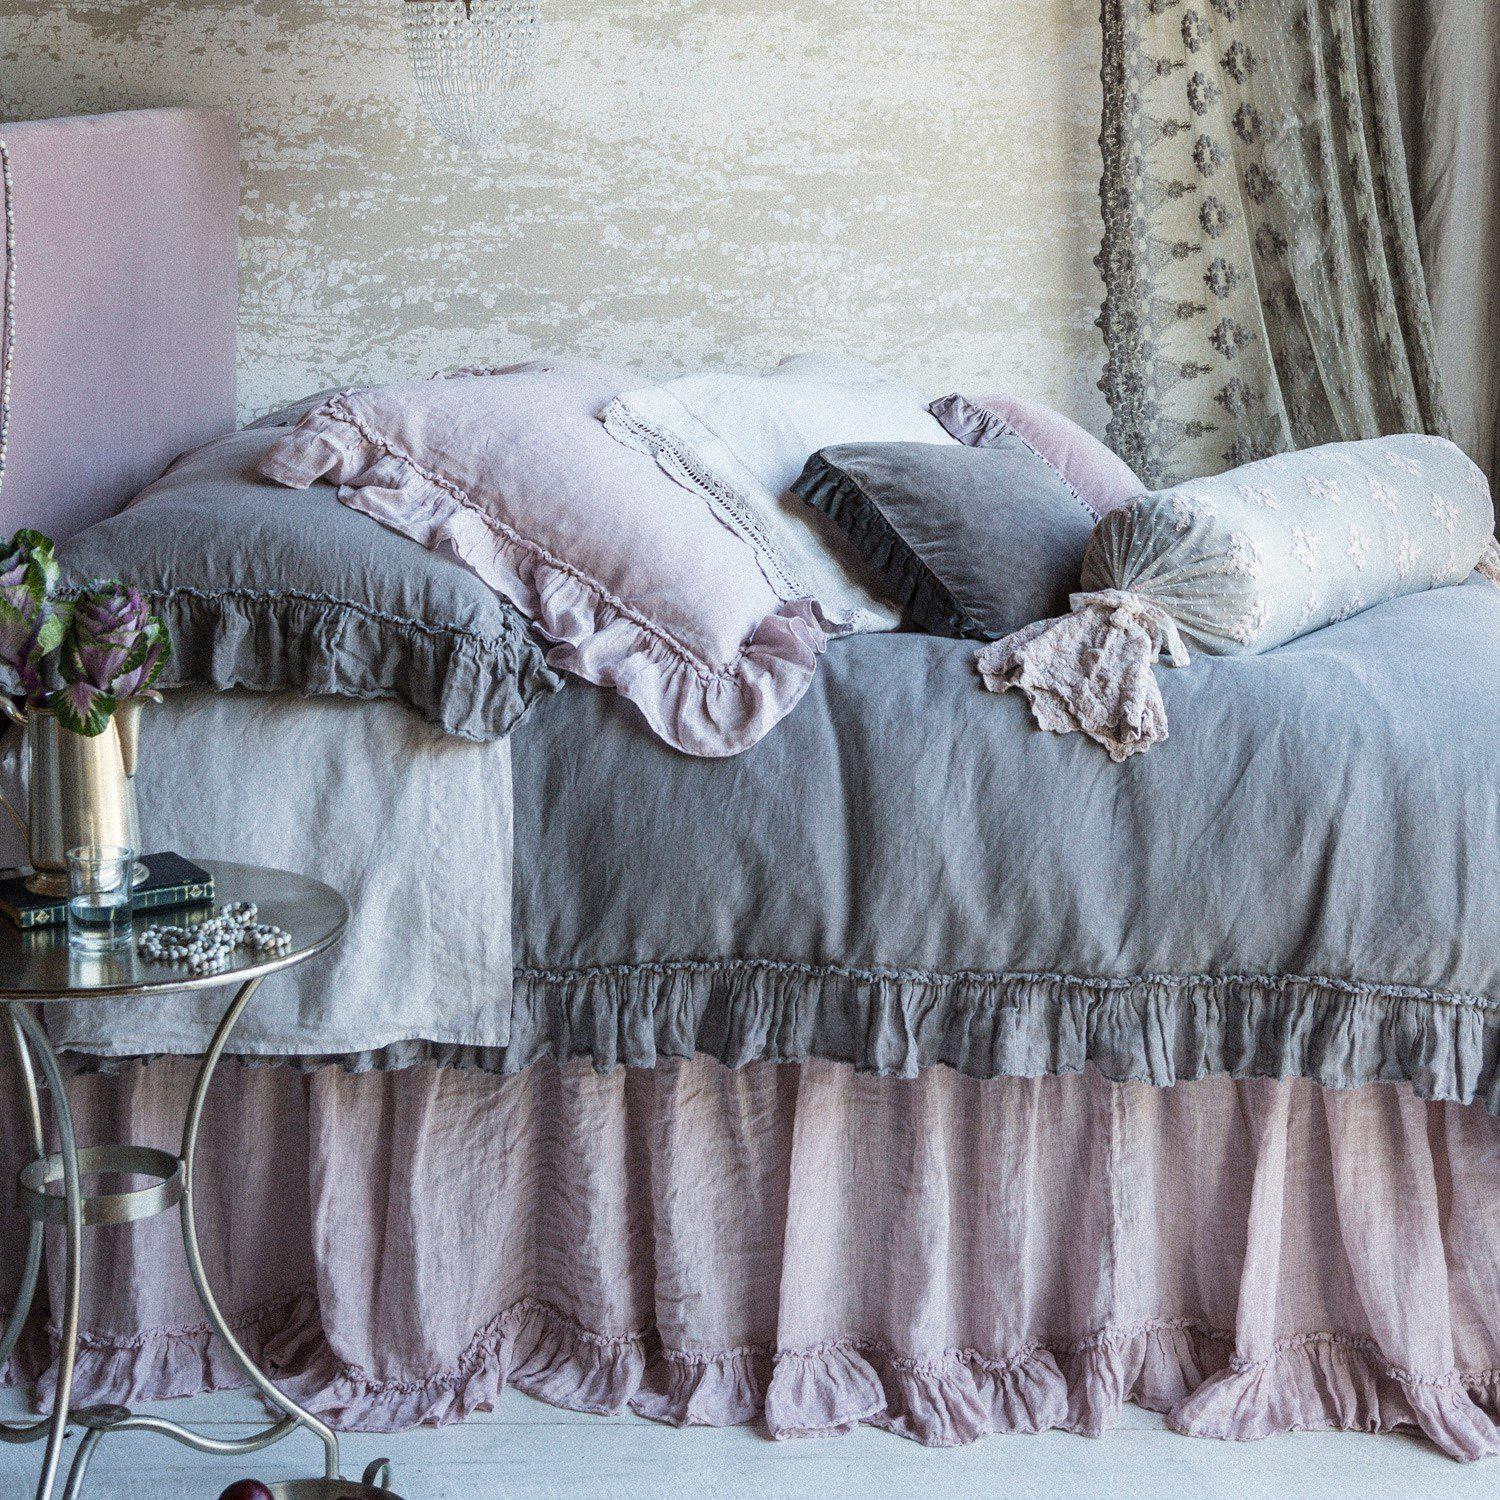 SALE! Bella Notte Linens Linen Whisper Pebble Queen Dust Ruffle-Sale-A Cottage in the City